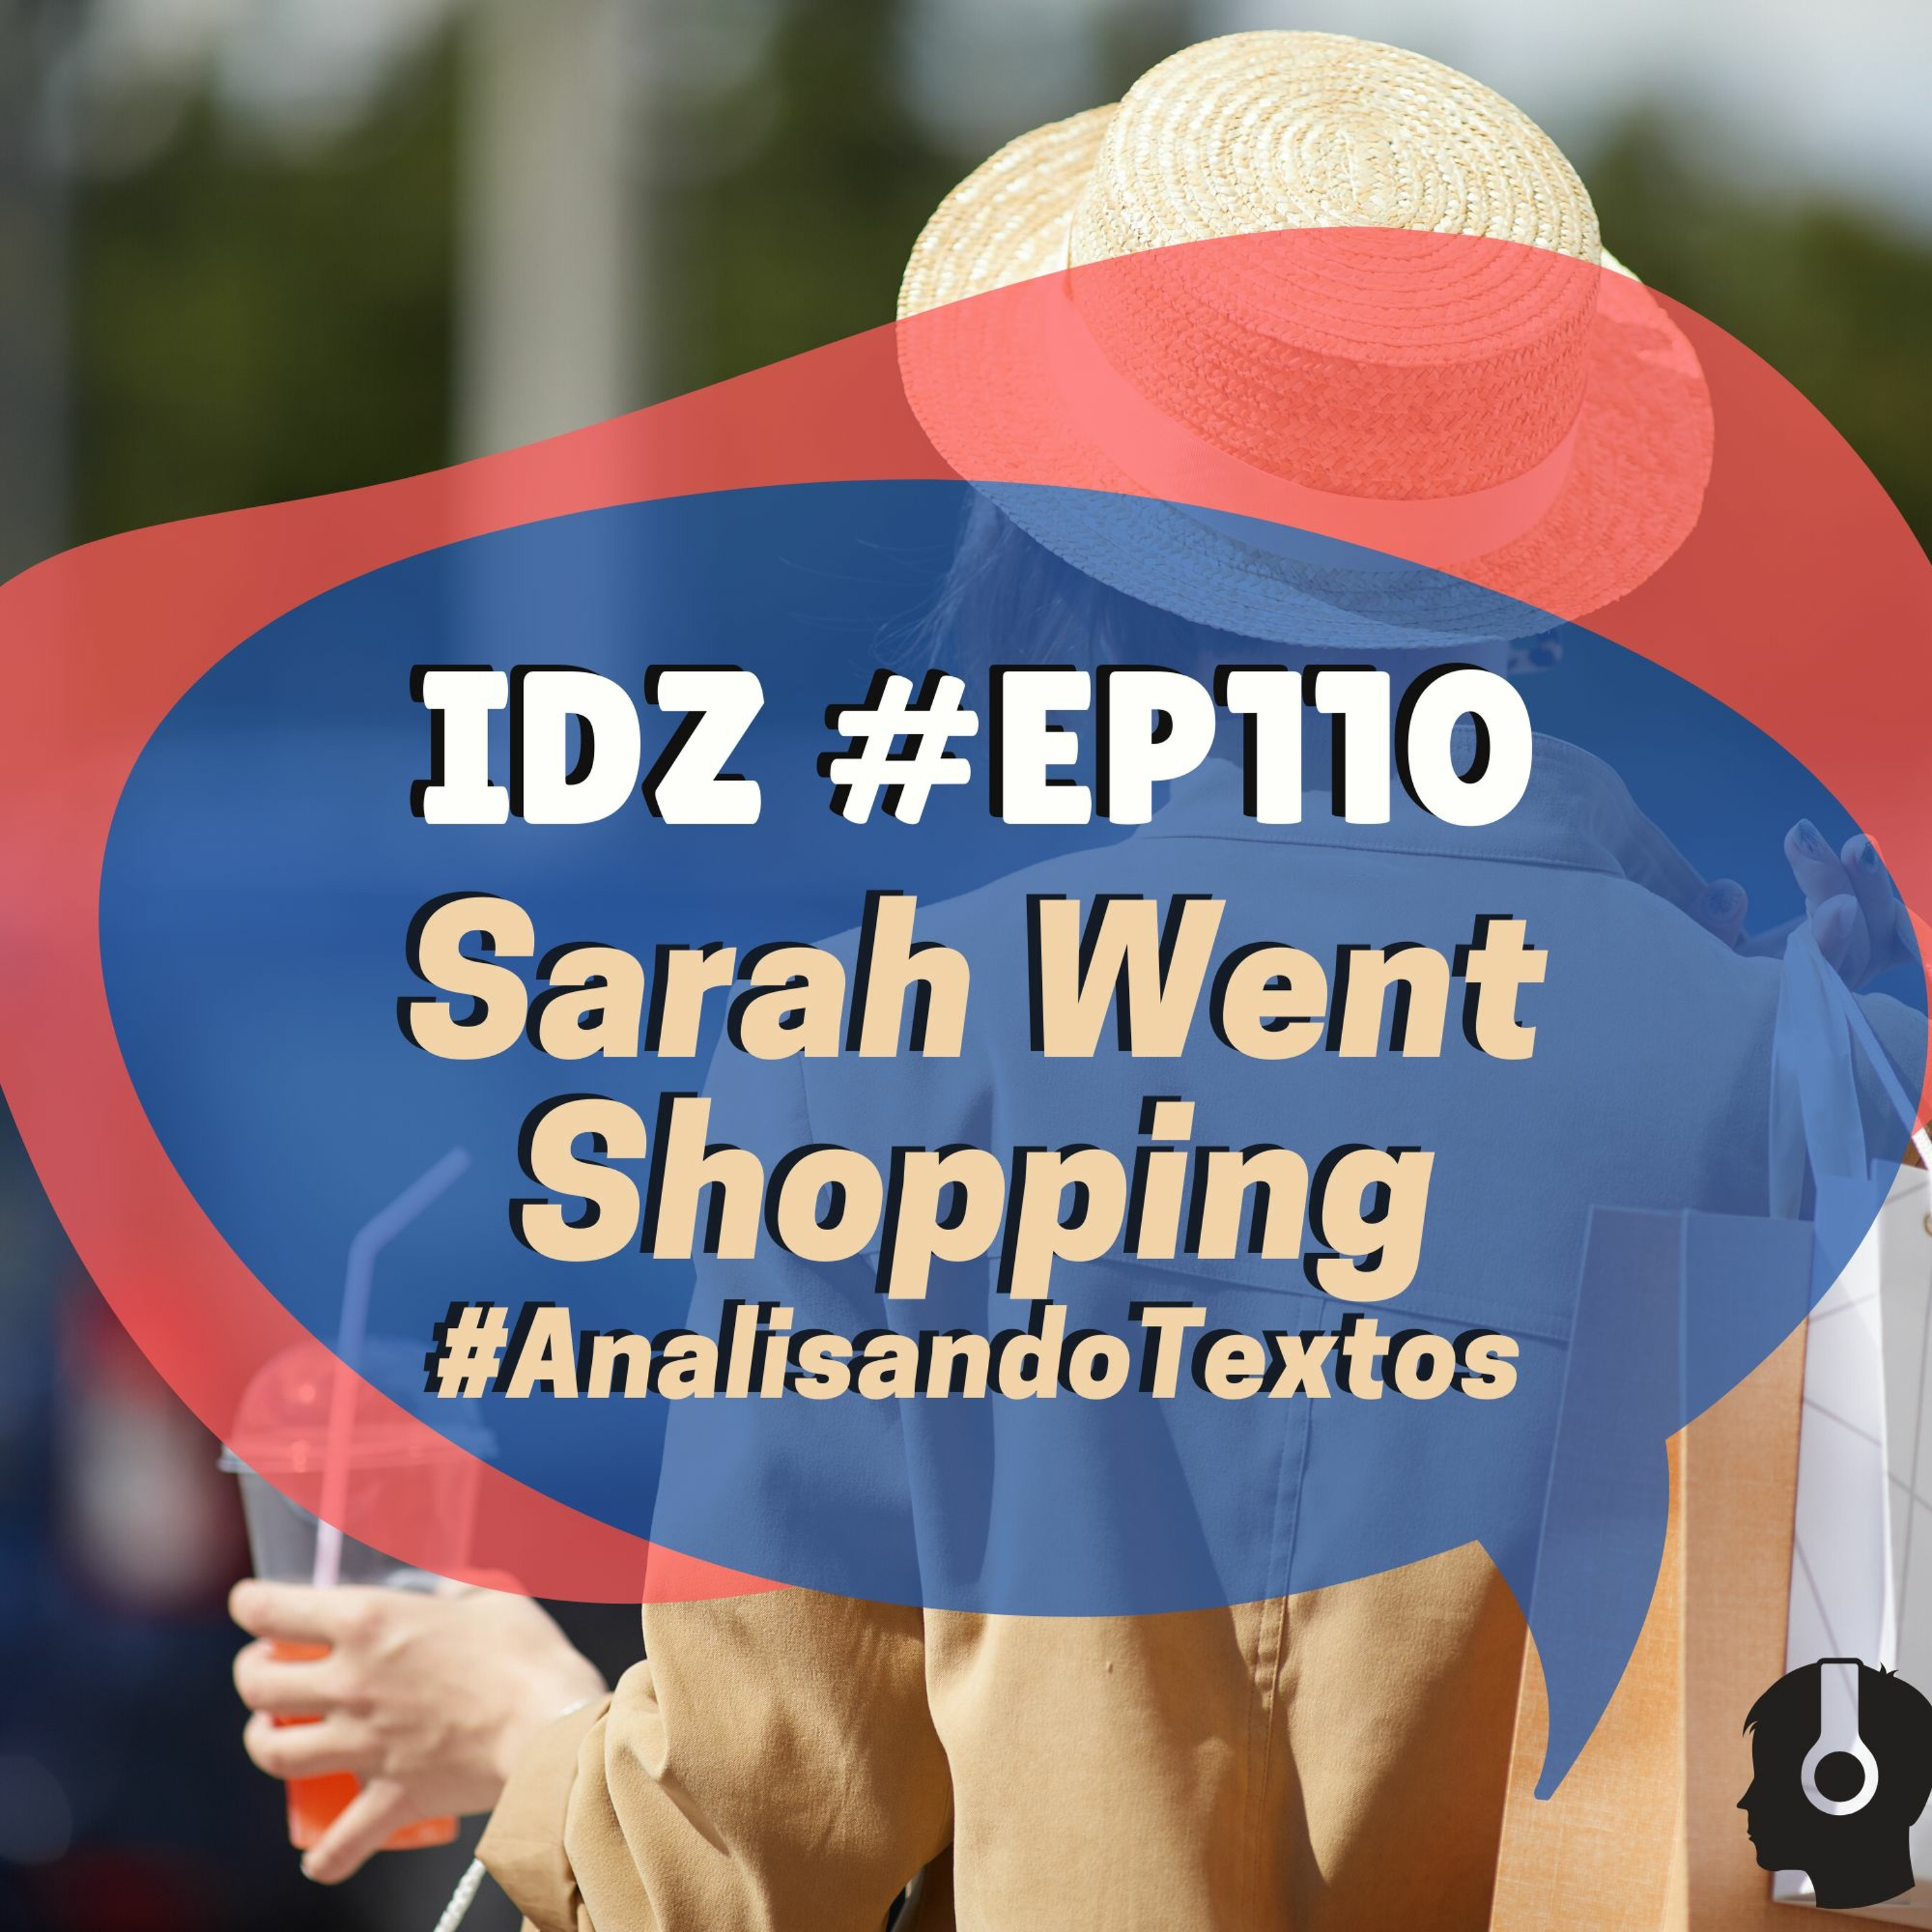 IDZ #110 - Sarah Went Shopping [Analisando Textos]